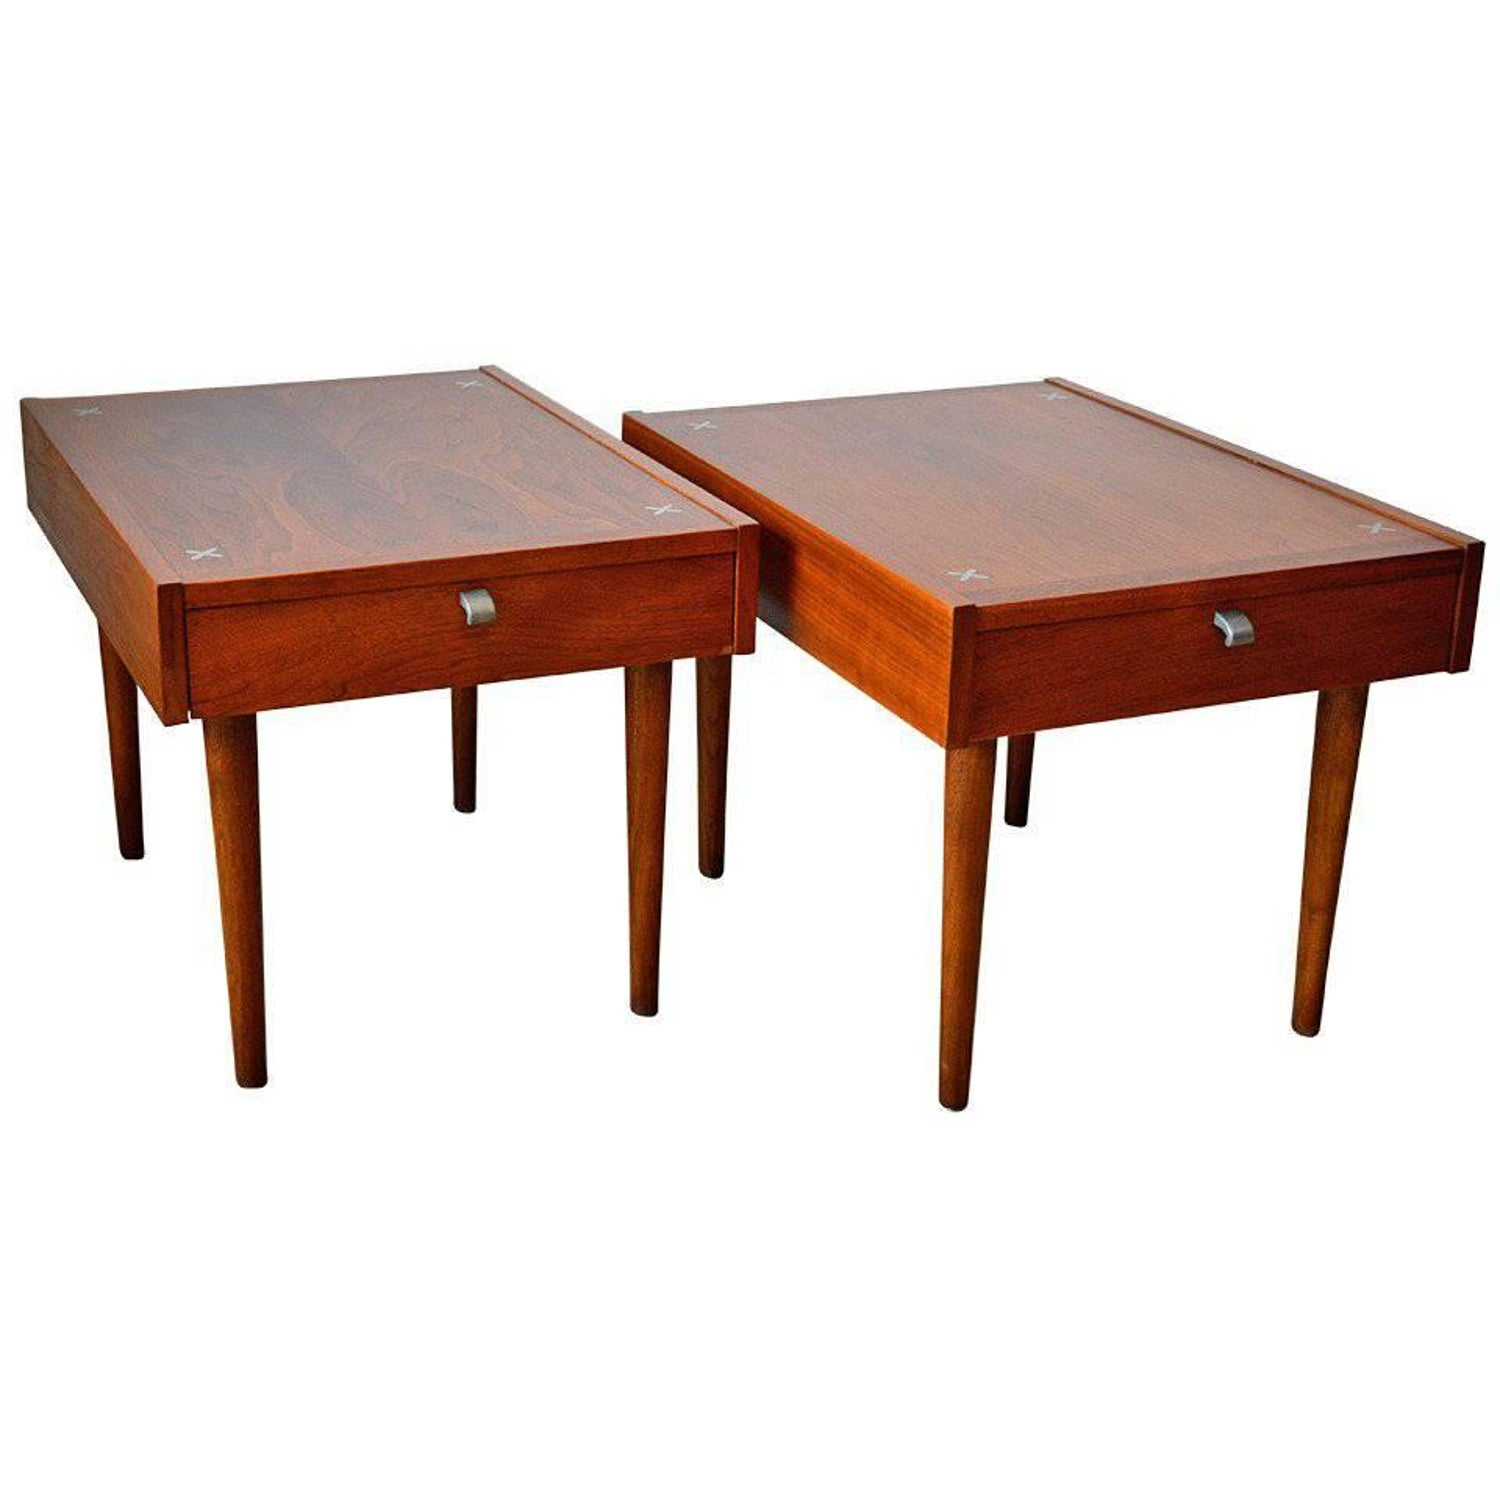 Pair of Walnut End Tables by Merton Gershun for American of